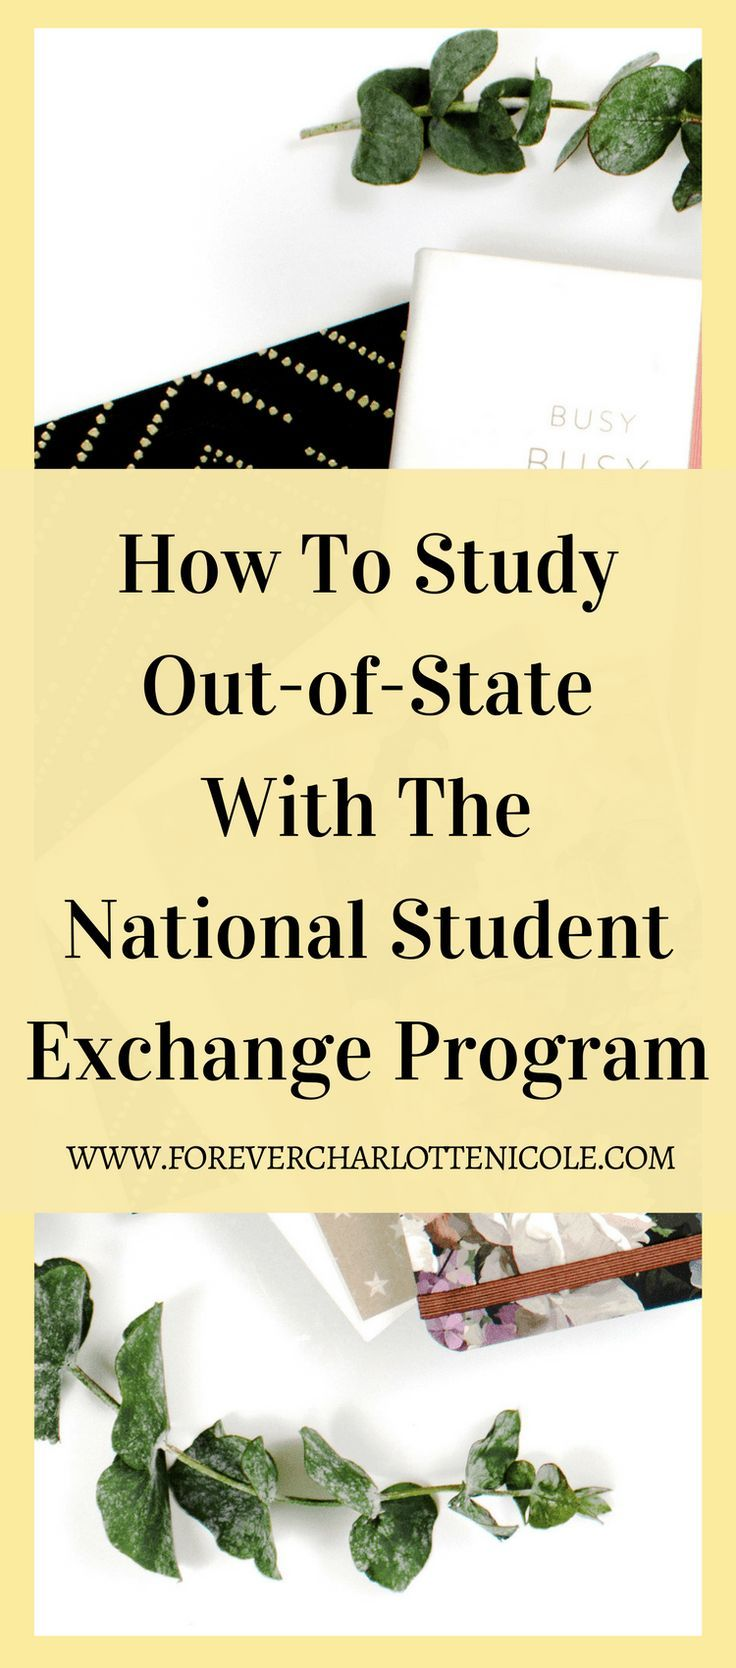 Ever want to study at an out-of-state college for a cheaper price? Learn about the National Student Exchange program, which allows students to do just that. | Forever Charlotte Nicole | www.forevercharlottenicole.com